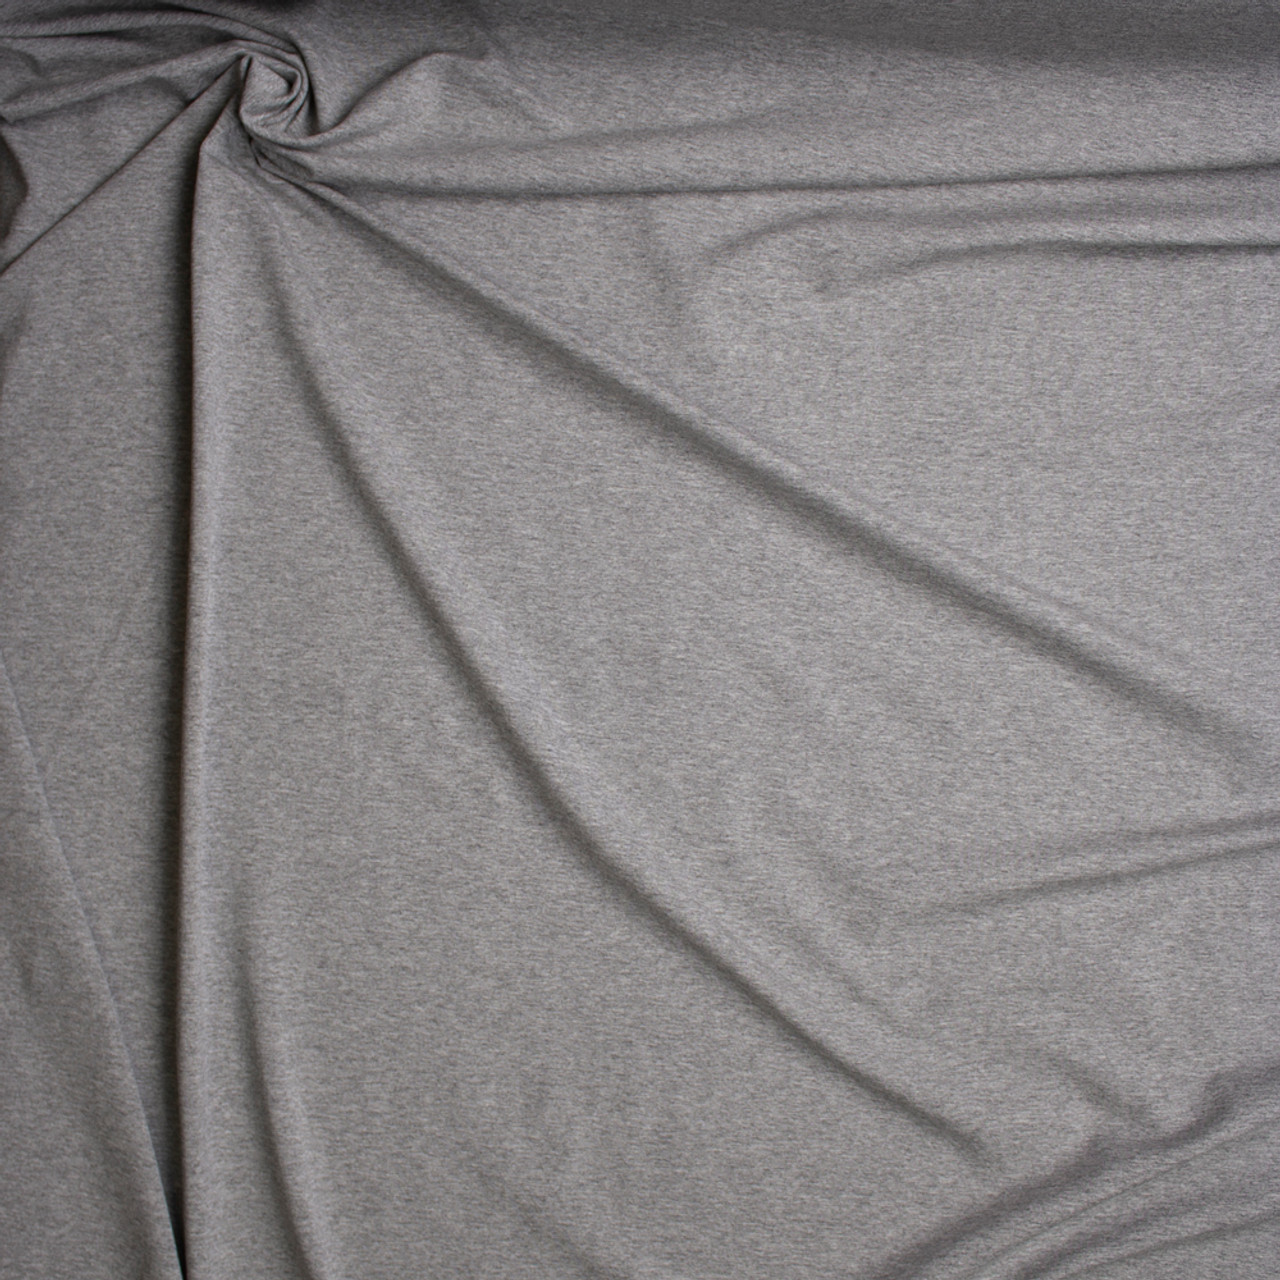 47017910008 ... Heather Grey Stretch Midweight Cotton Jersey Knit Fabric By The Yard - Wide  shot